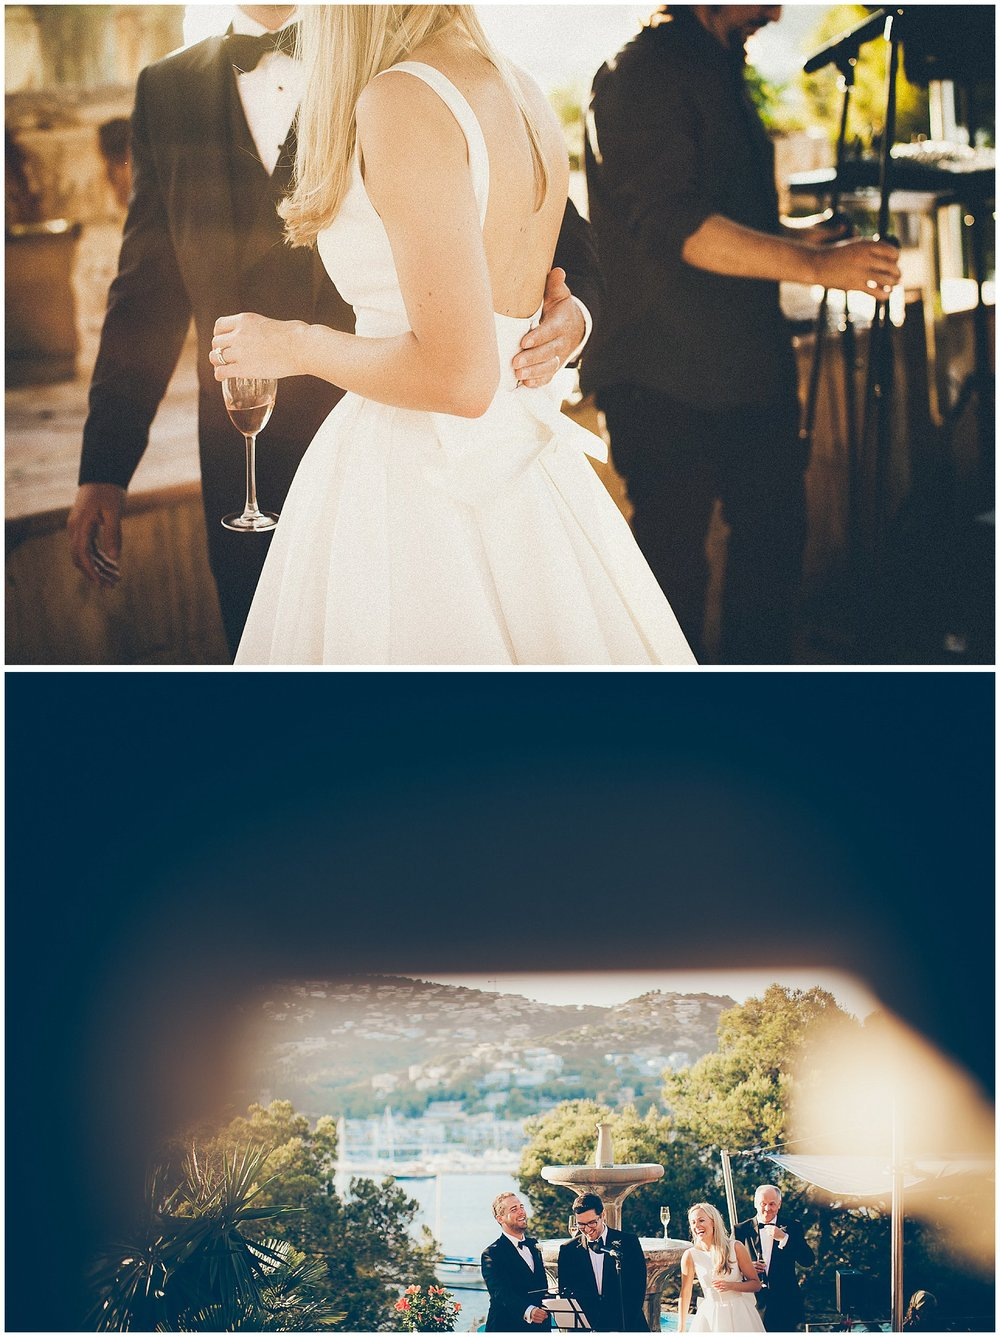 Church_VillaItalia_MallorcaWedding_FionaClairPhotography-171.jpg